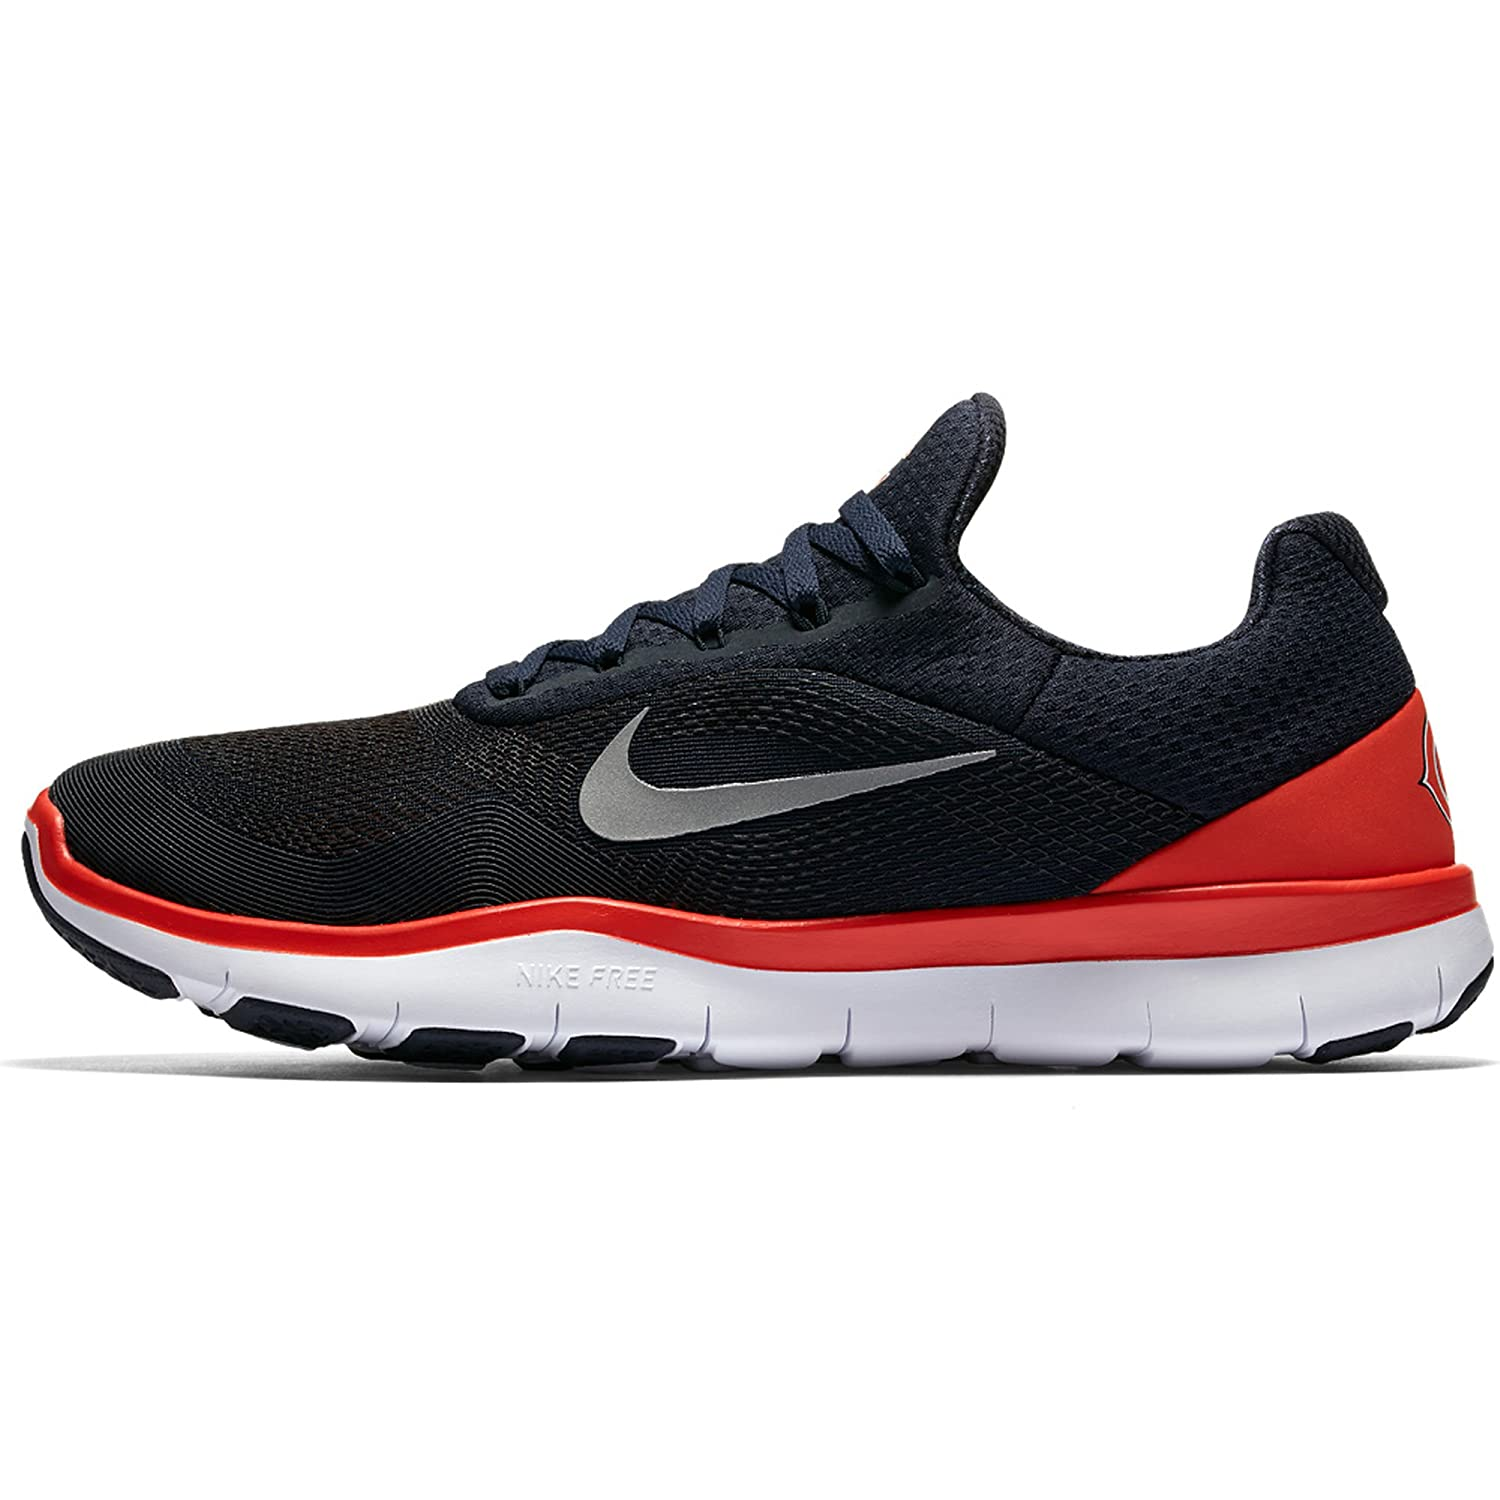 Amazon.com: Nike Chicago Bears Free Trainer V7 NFL Collection Shoes - Size  Men's 9.5 US: Clothing